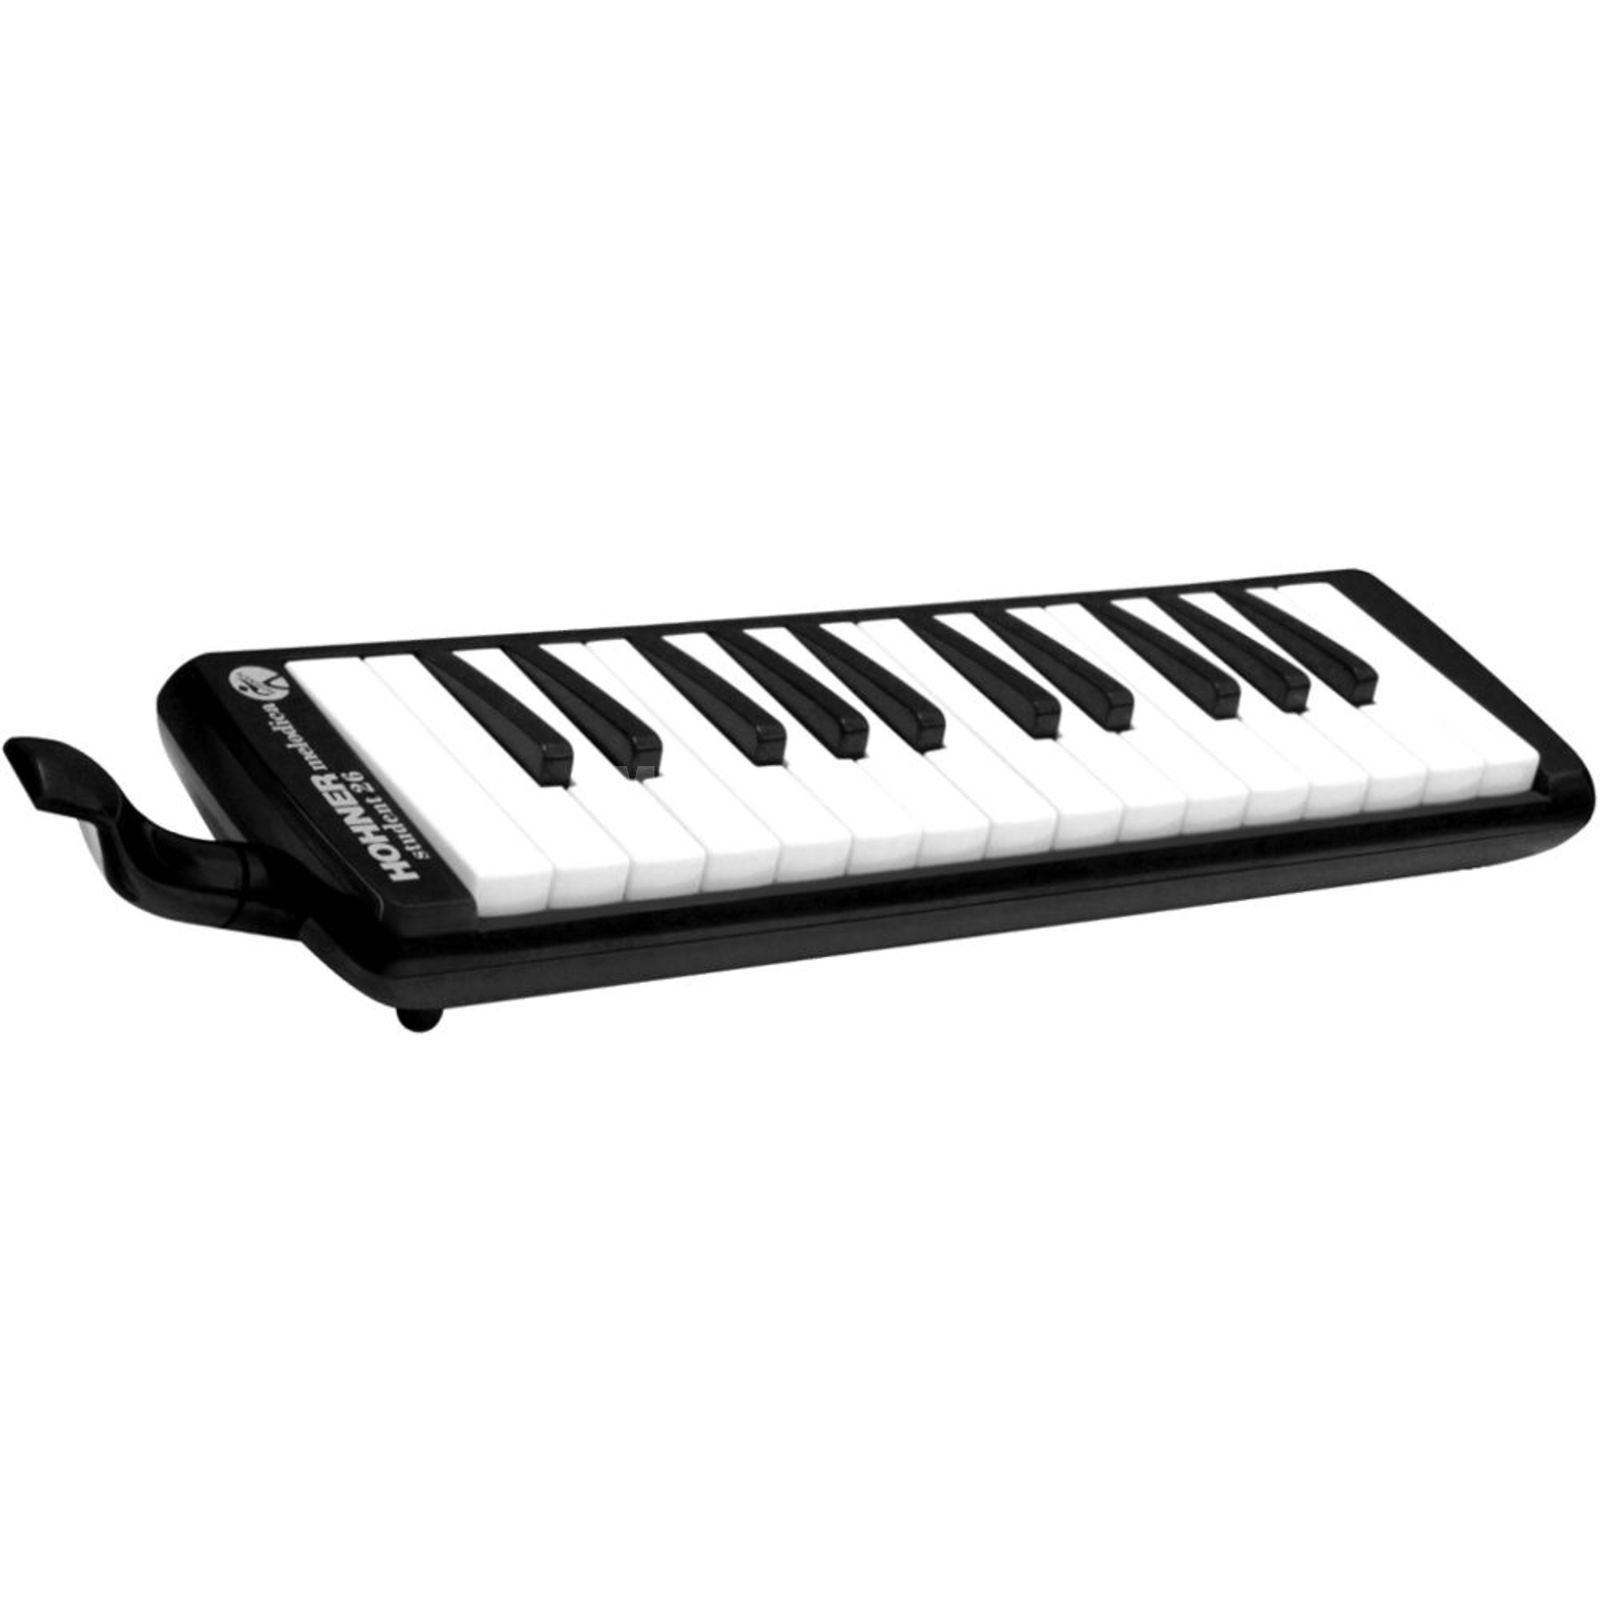 Hohner Student Melodica 26 - Black incl. Bag and Accessories Product Image